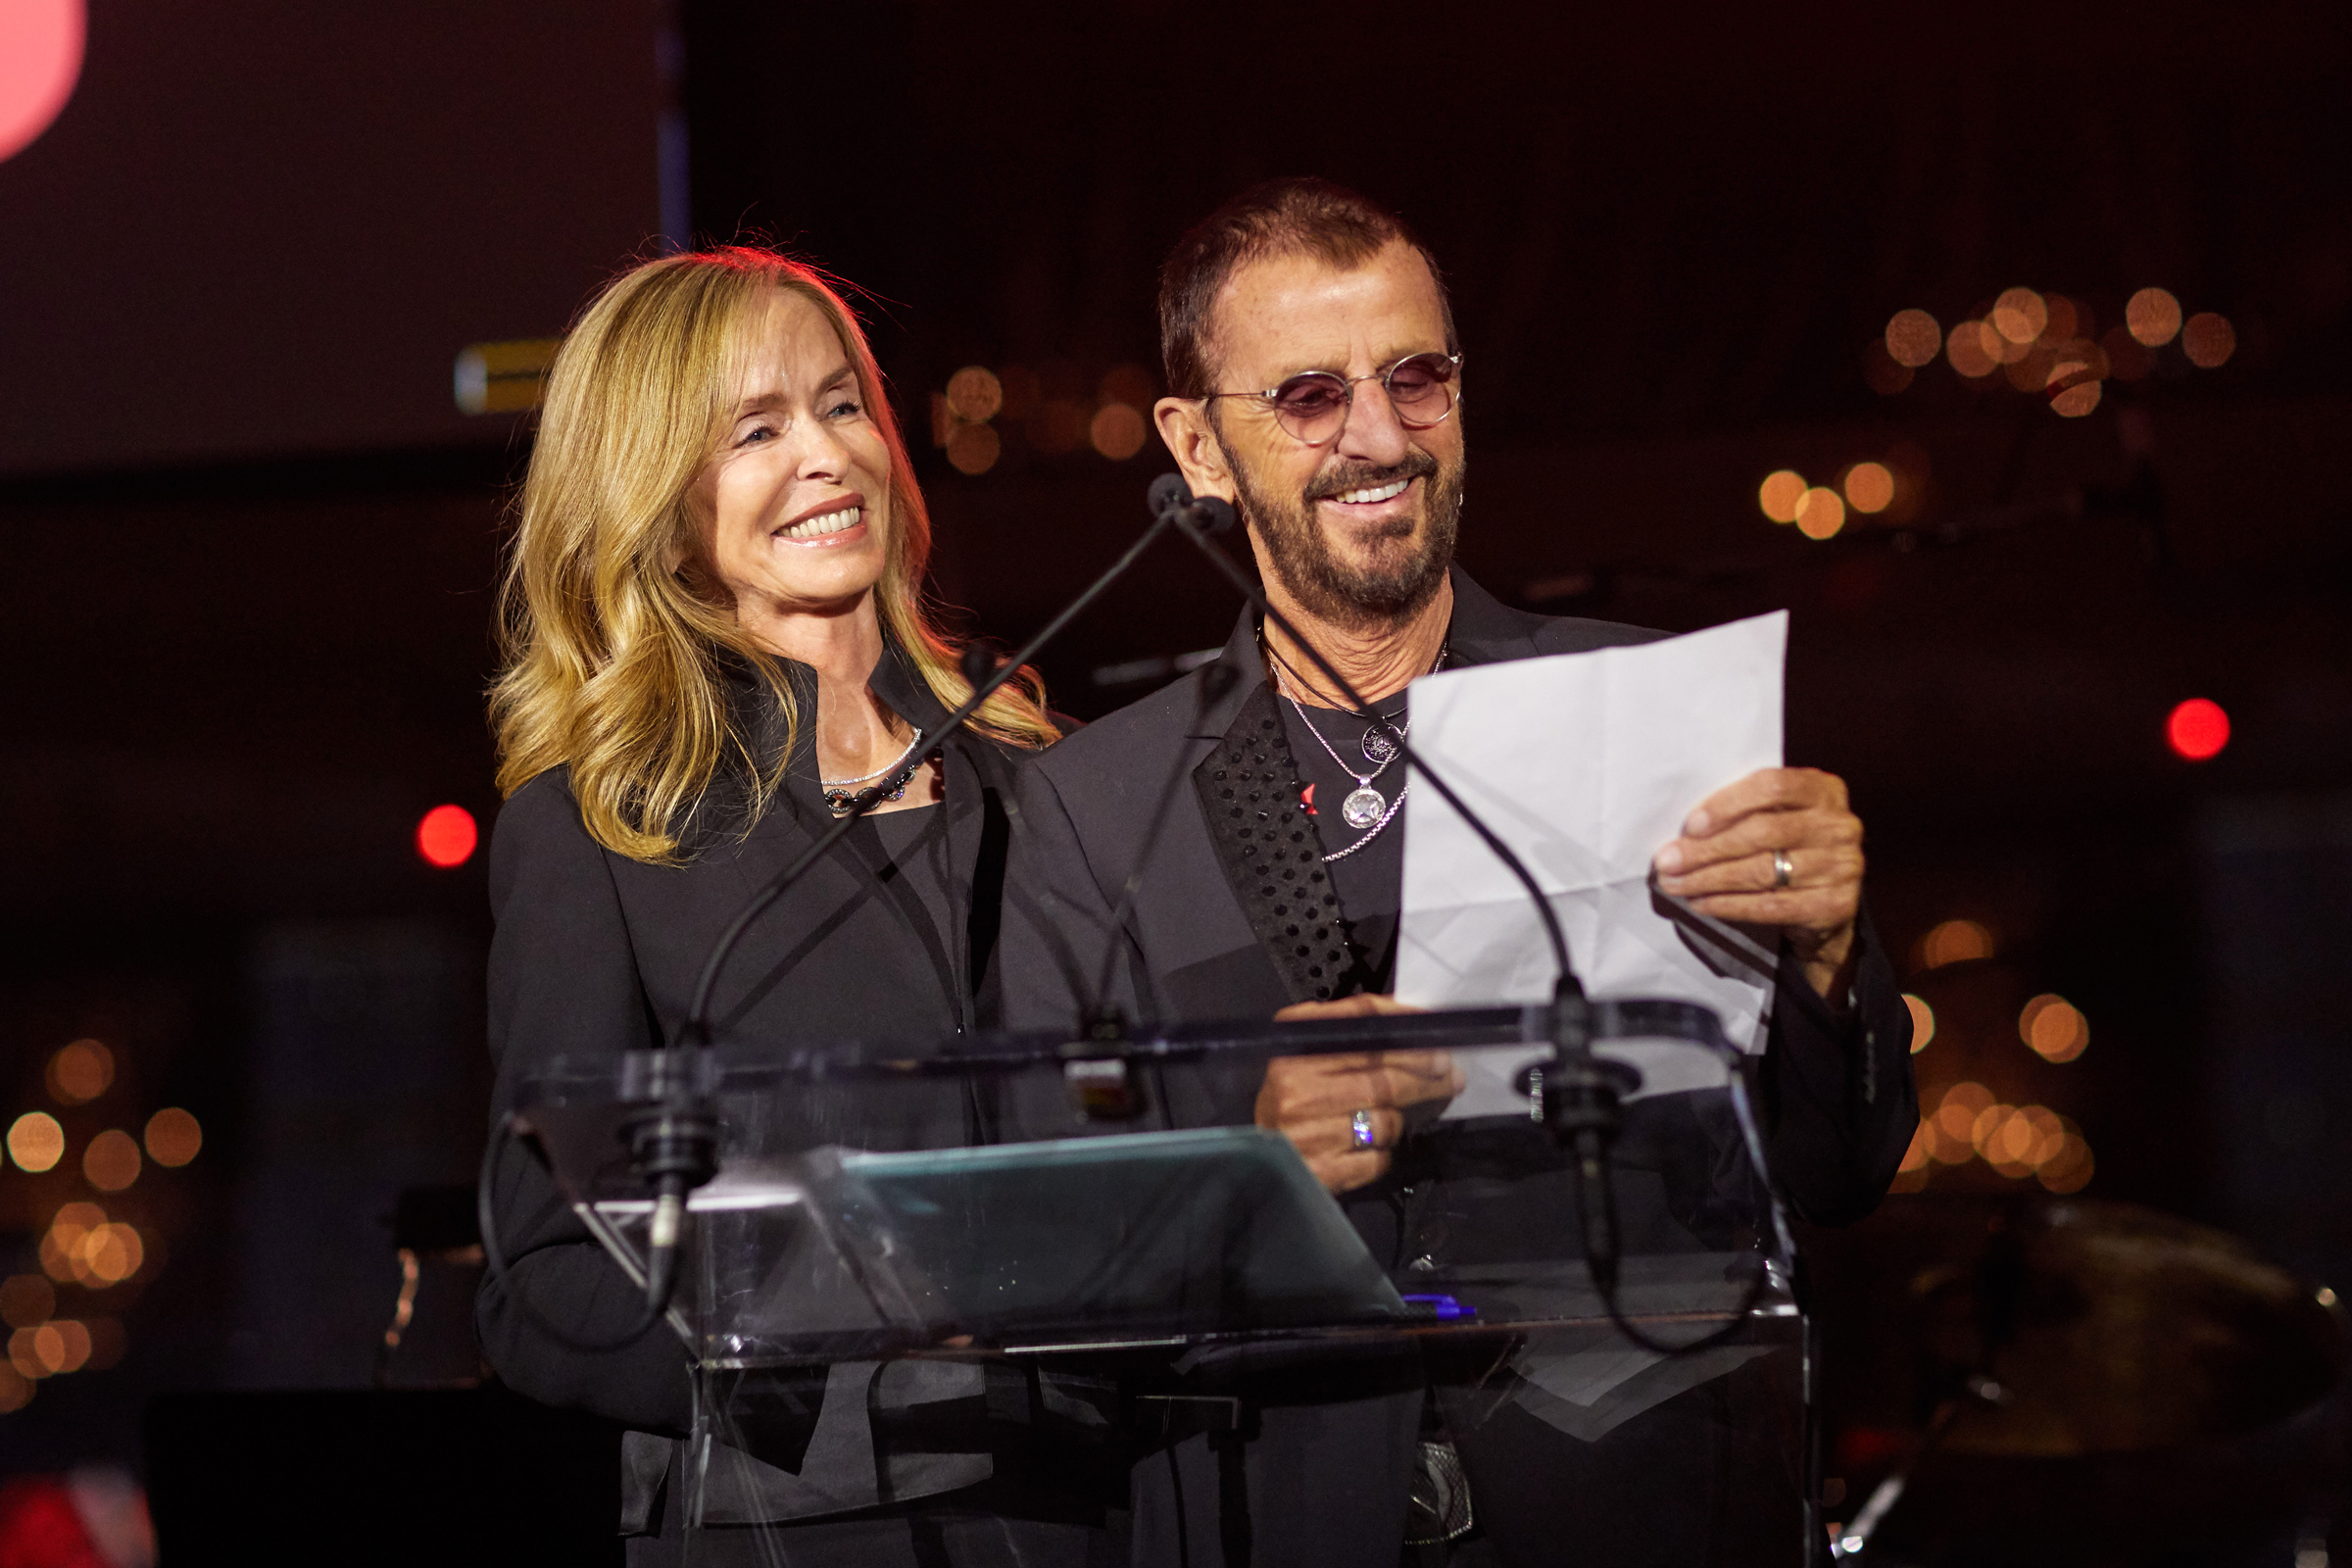 Joe Walsh, Ringo Starr and the Mission to Save 45 Million Addicted Americans